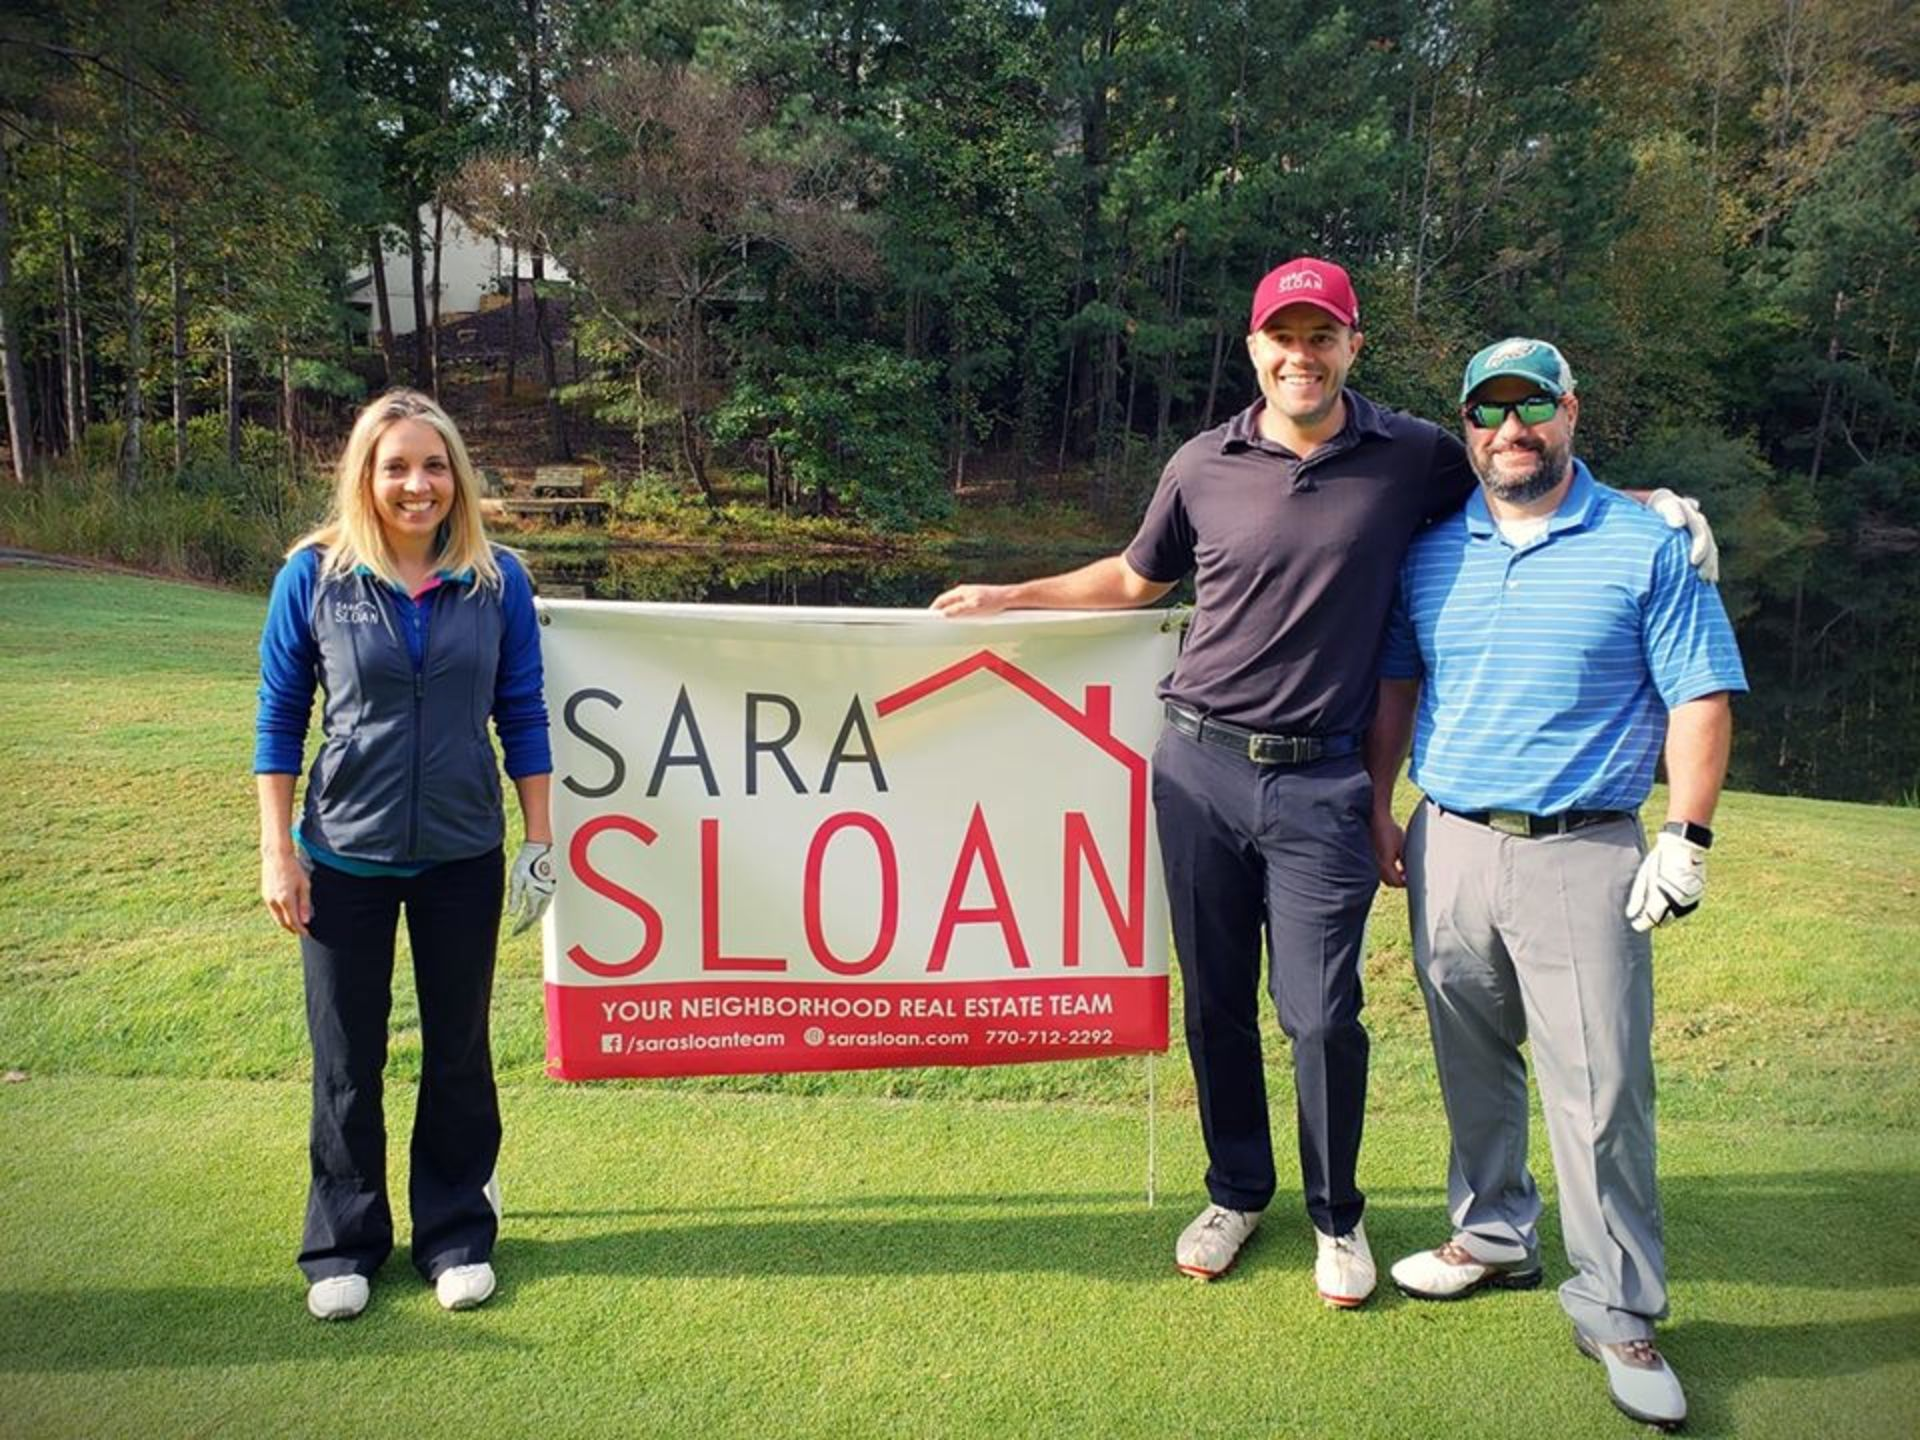 Giving back – Sara Sloan Team Cares